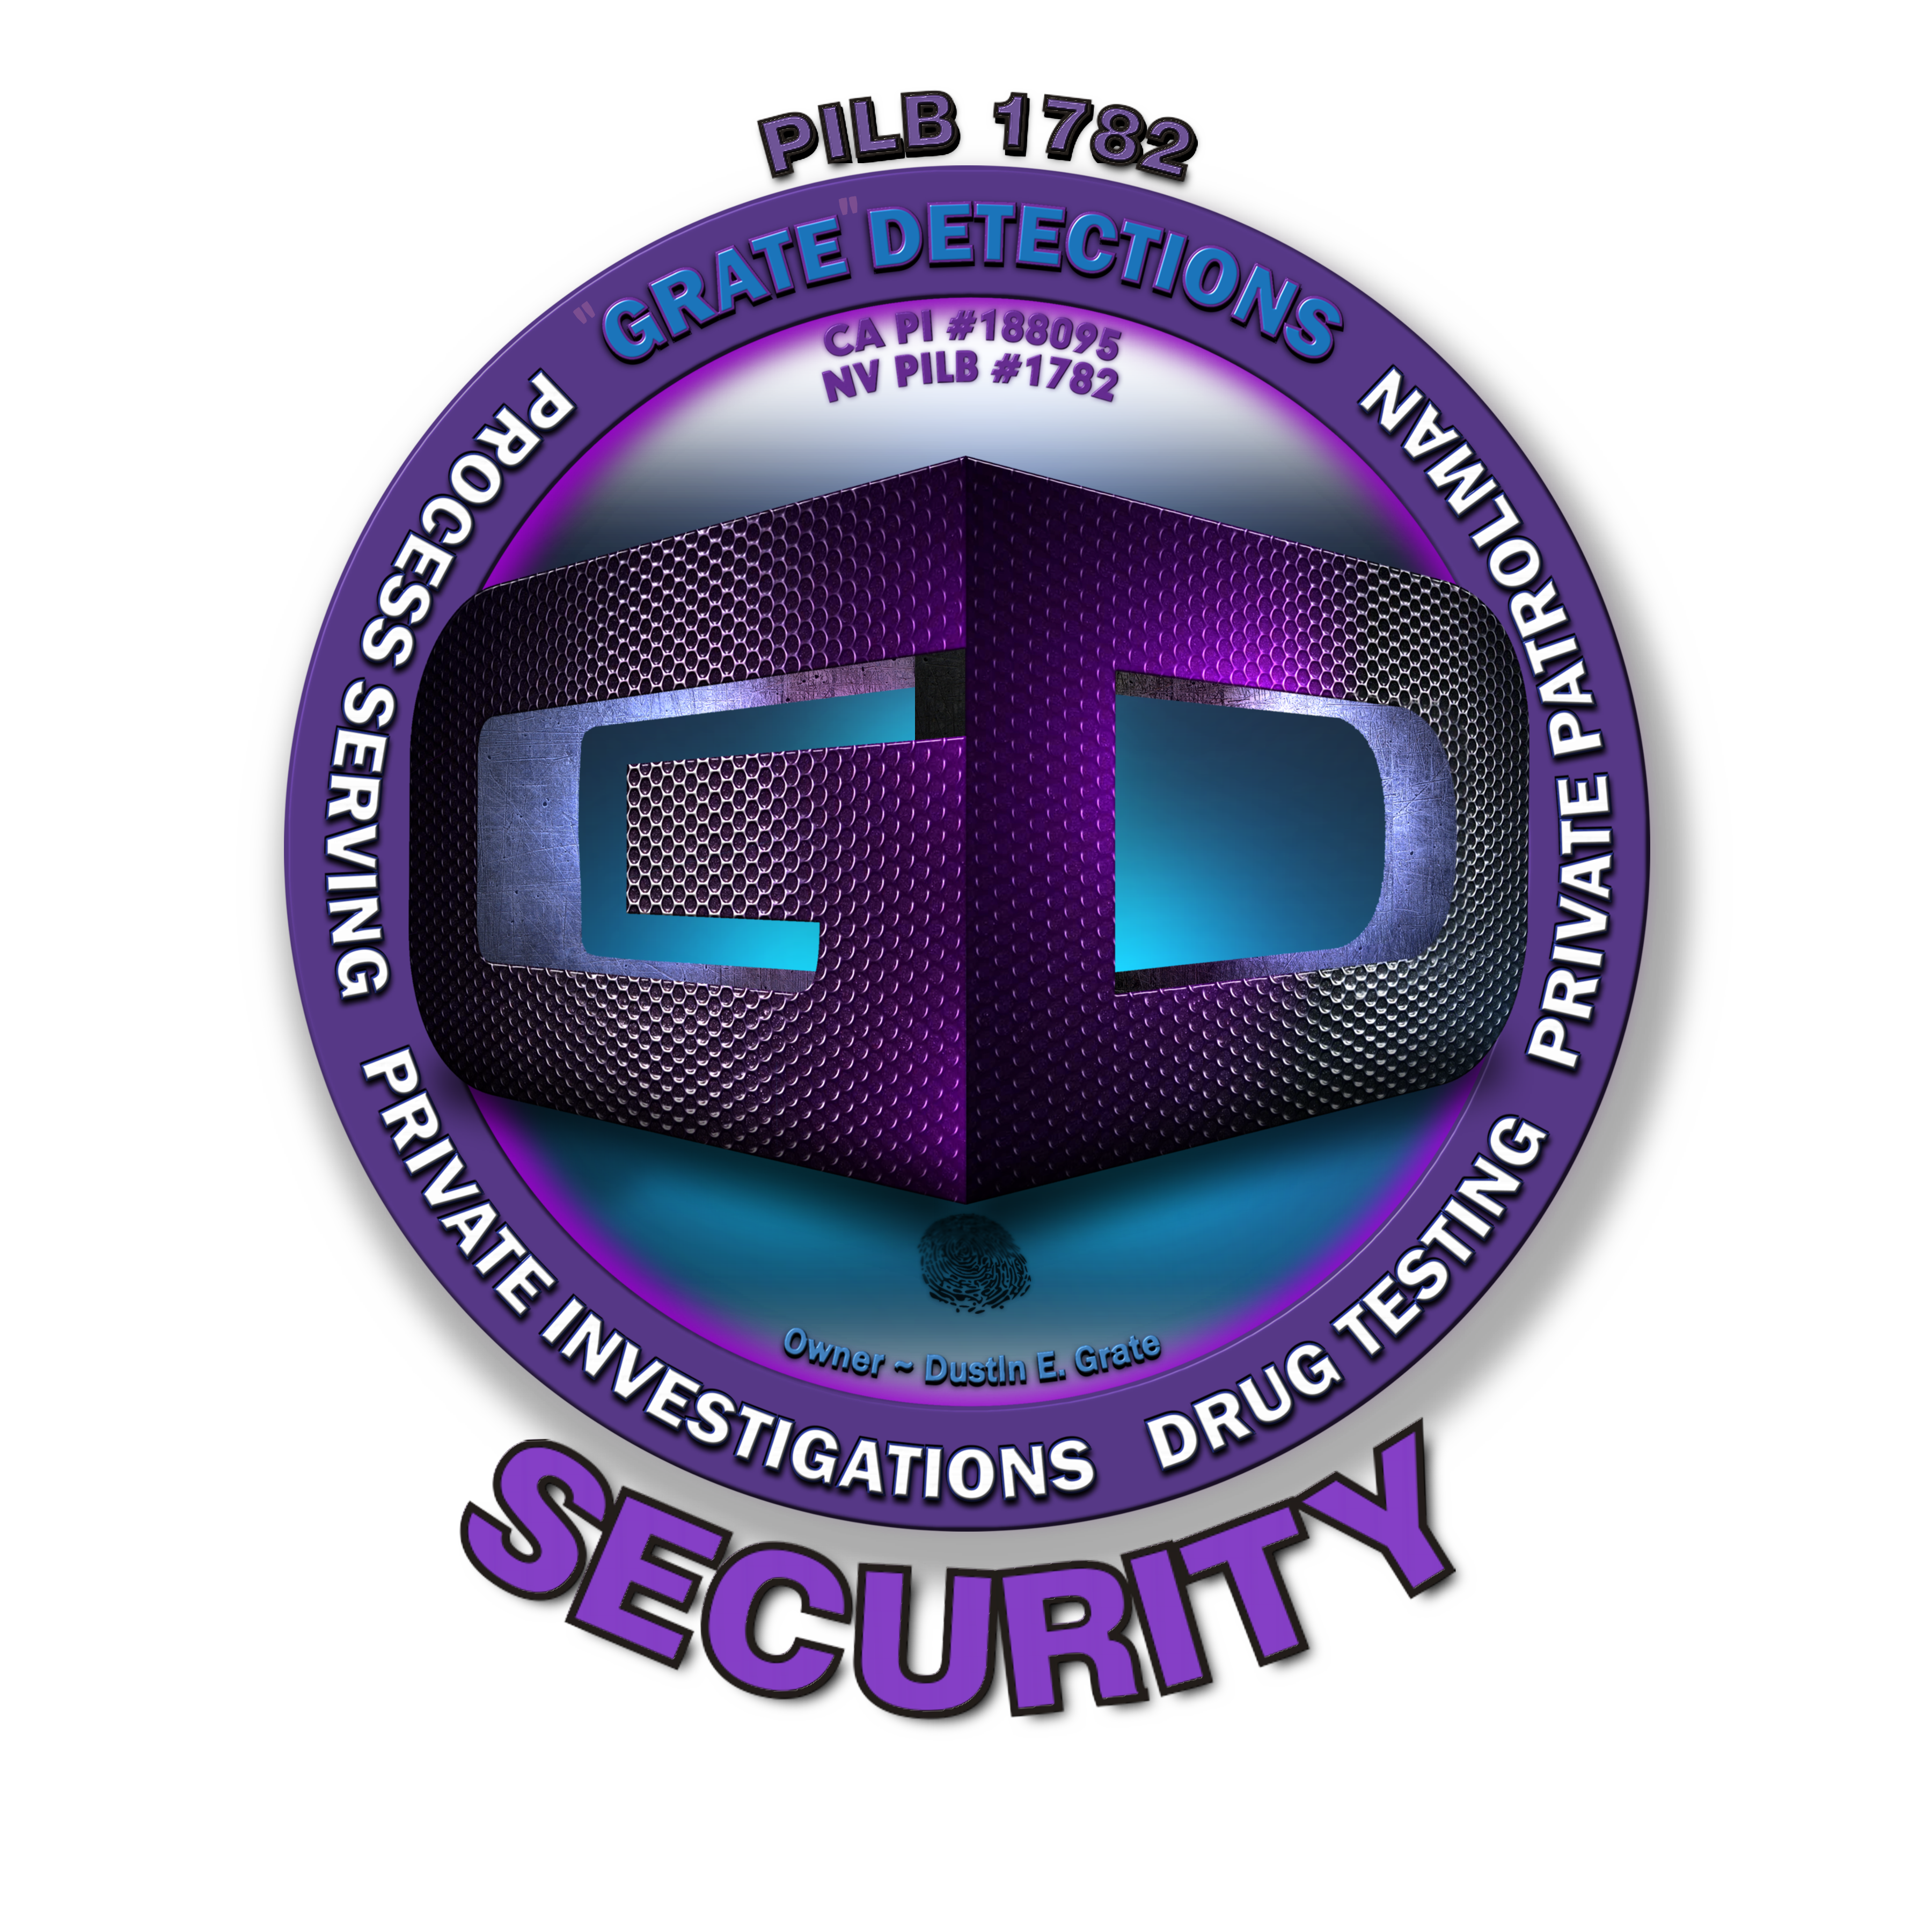 logo with security